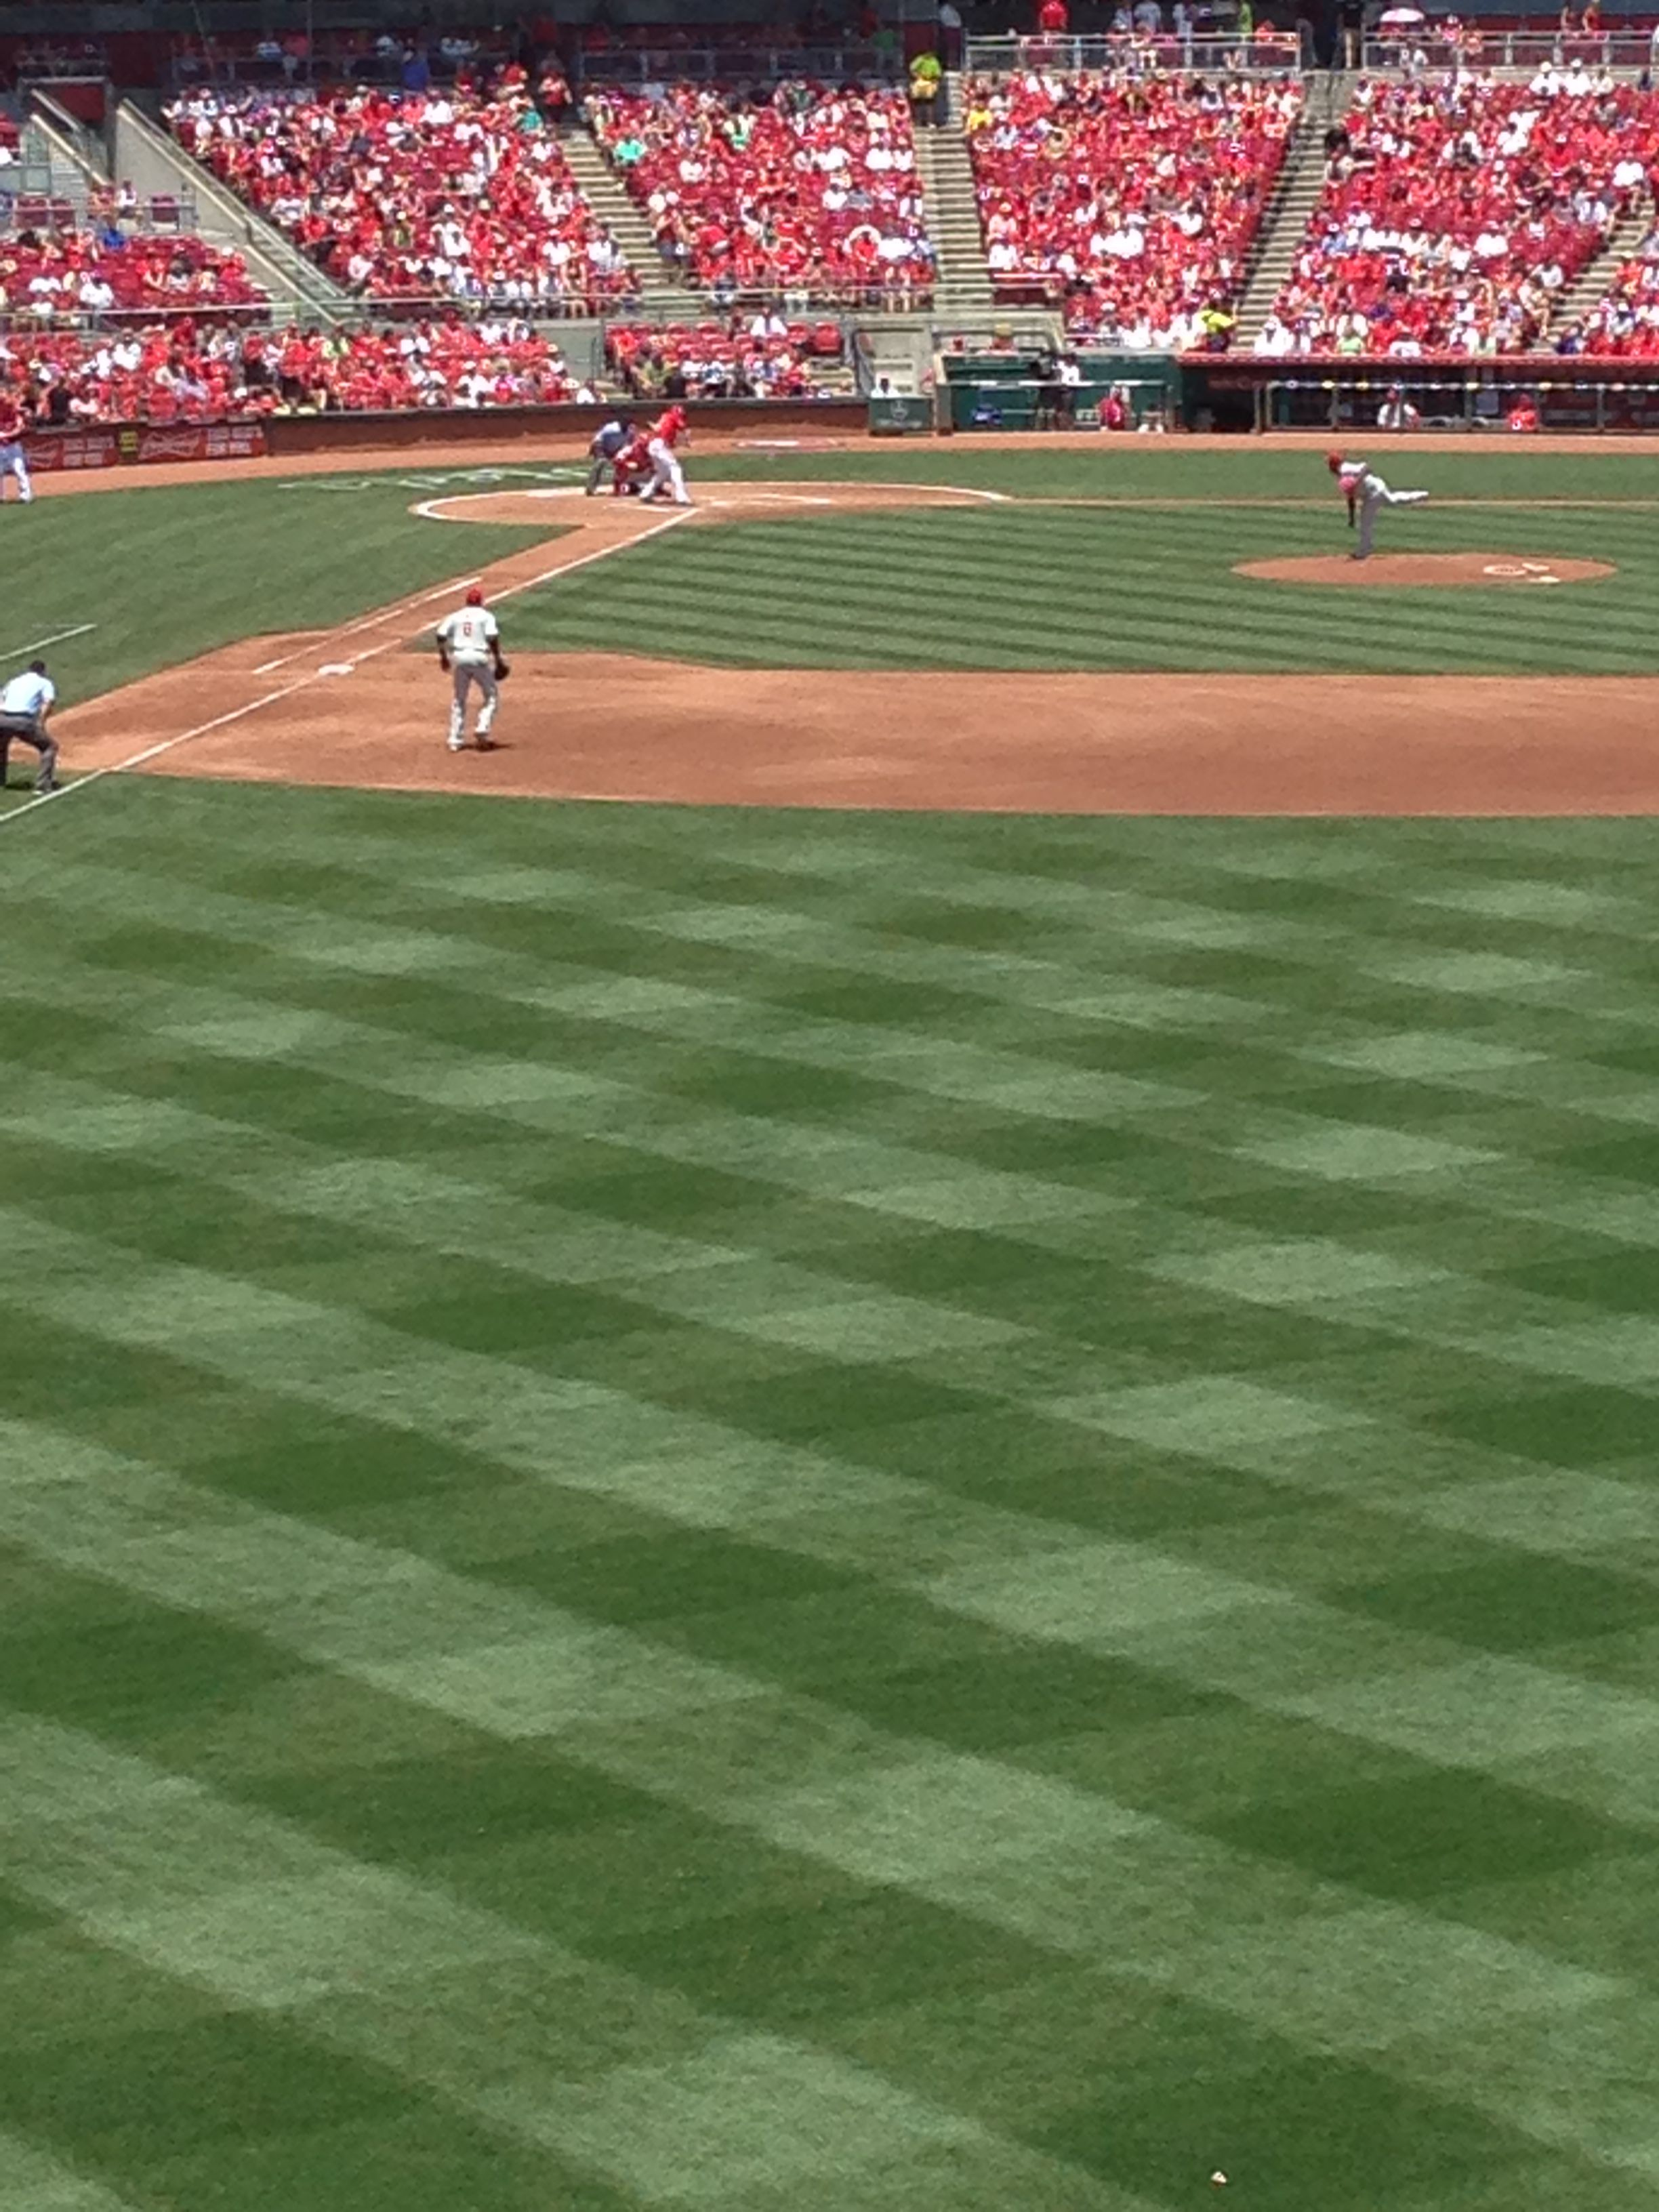 My favorite place and favorite team! Great American ball park! Go Cincy Reds! ❤️⚾️